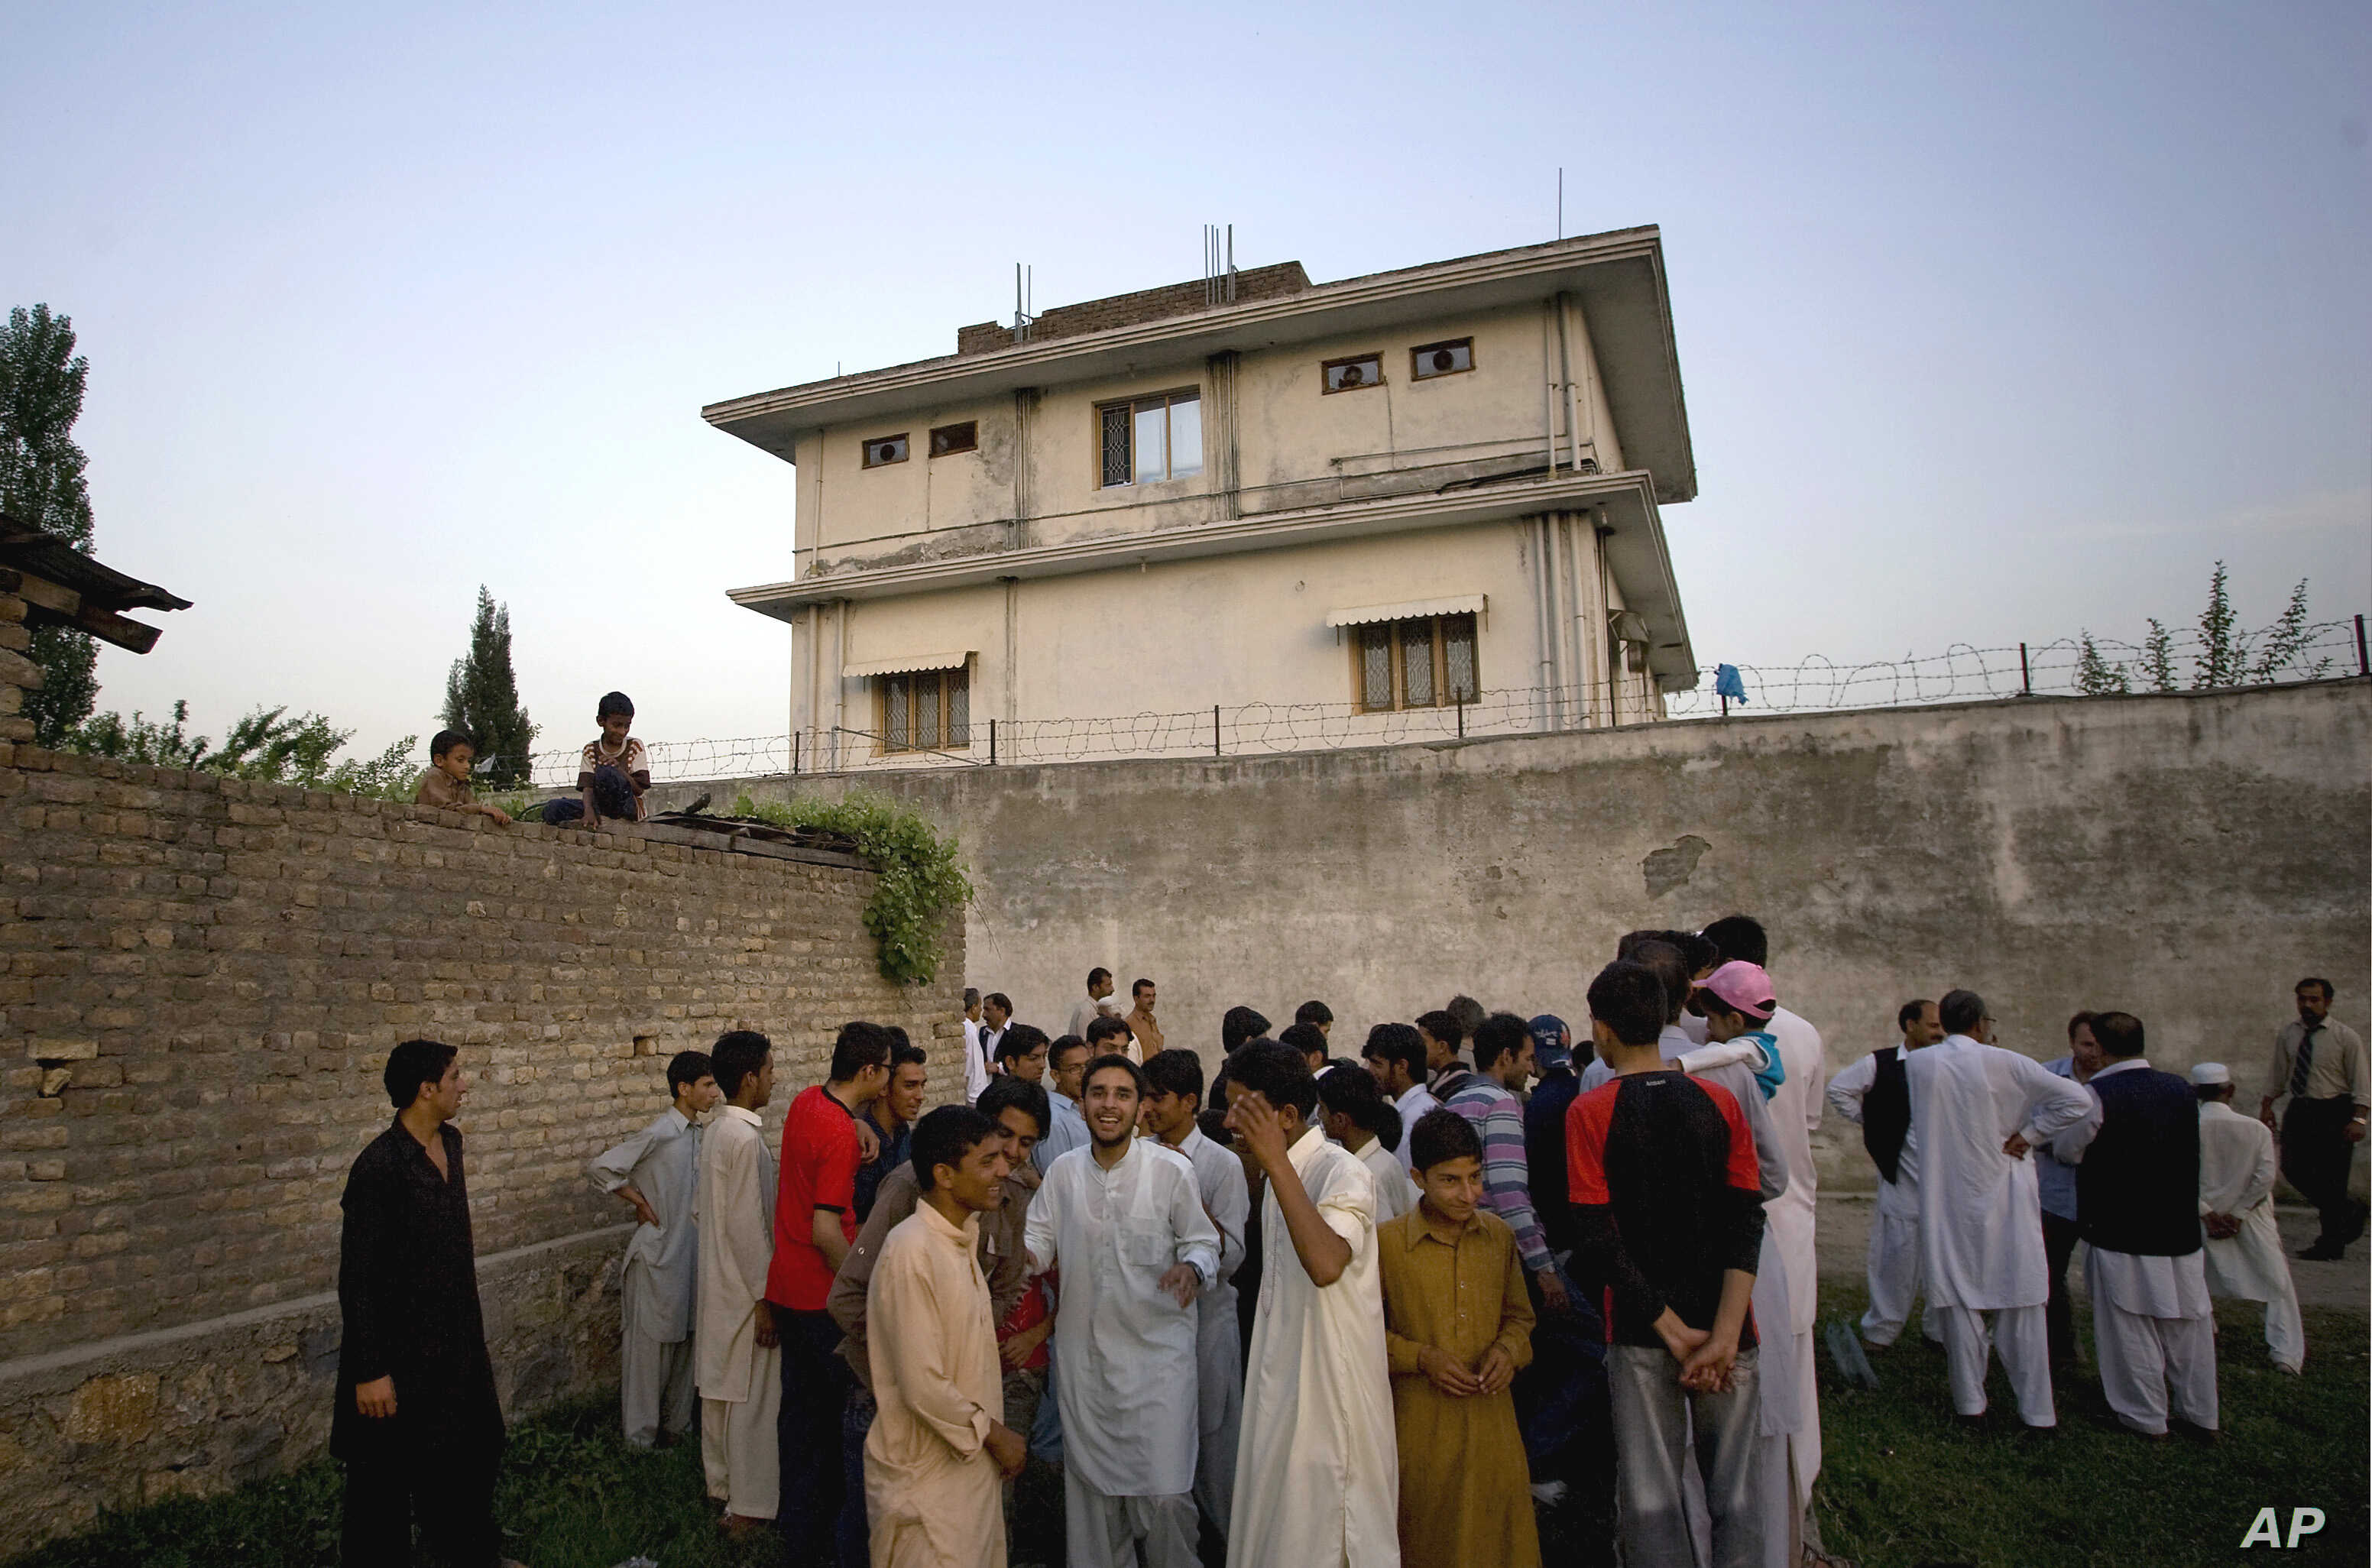 FILE - In this May 3, 2011, photo, local residents gather outside a compound where al-Qaida leader Osama bin Laden was killed by U.S. forces, in Abbottabad, Pakistan.